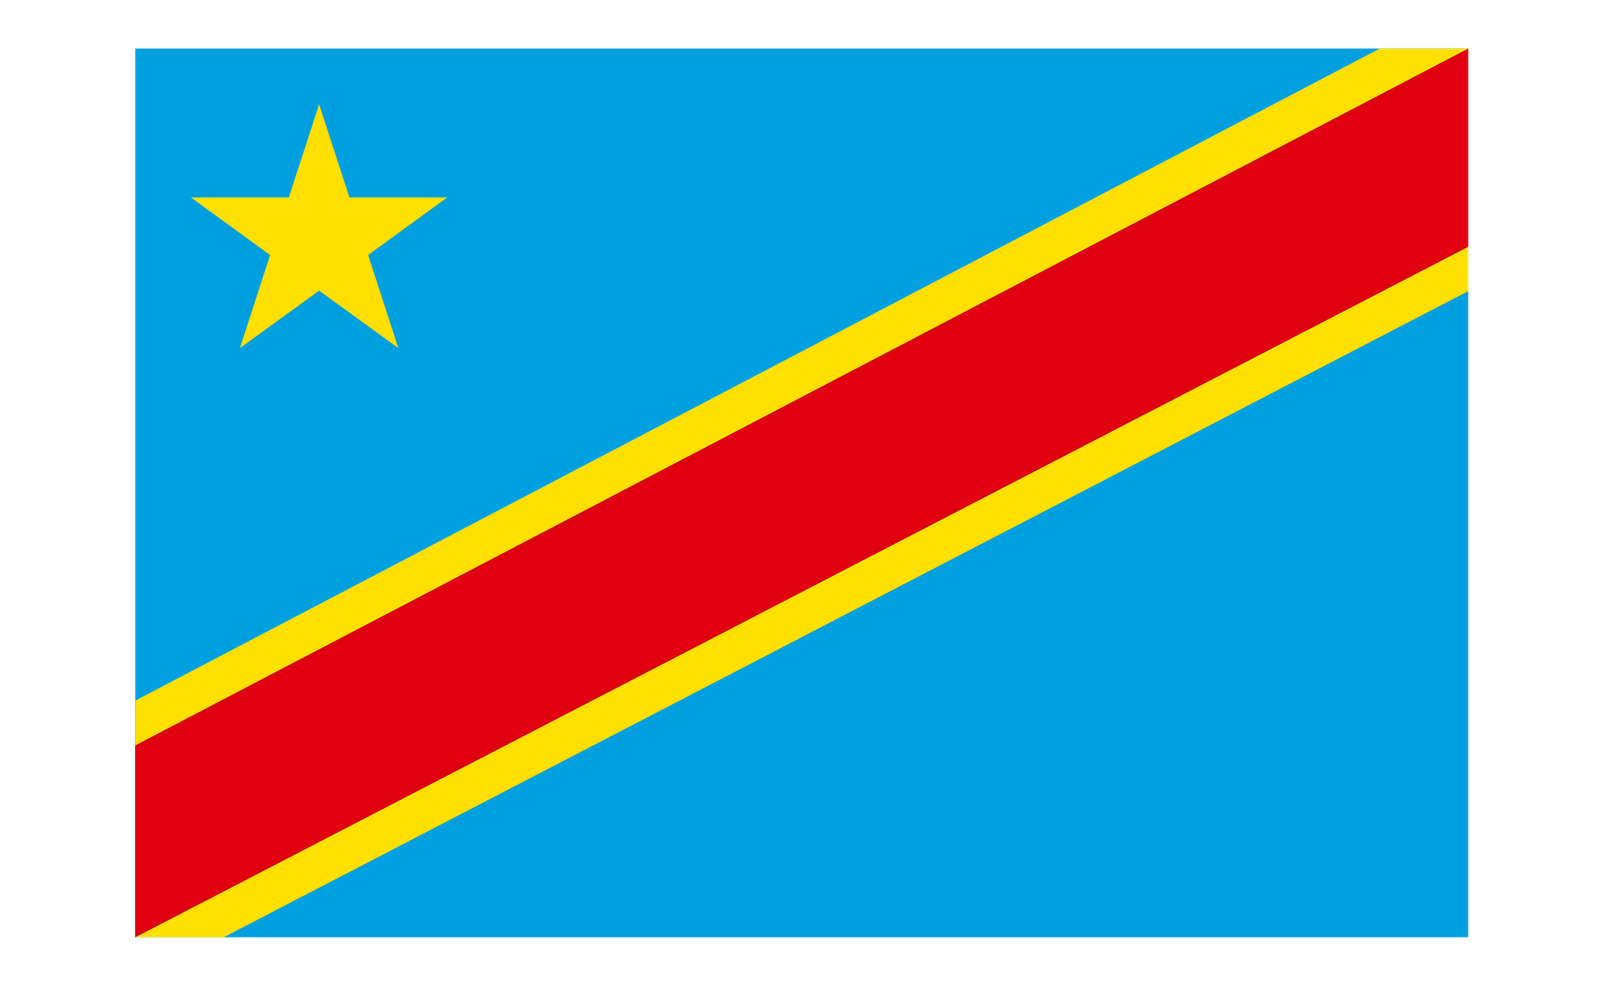 World Flags Democratic Republic of the Congo Flag hd 1600x1000